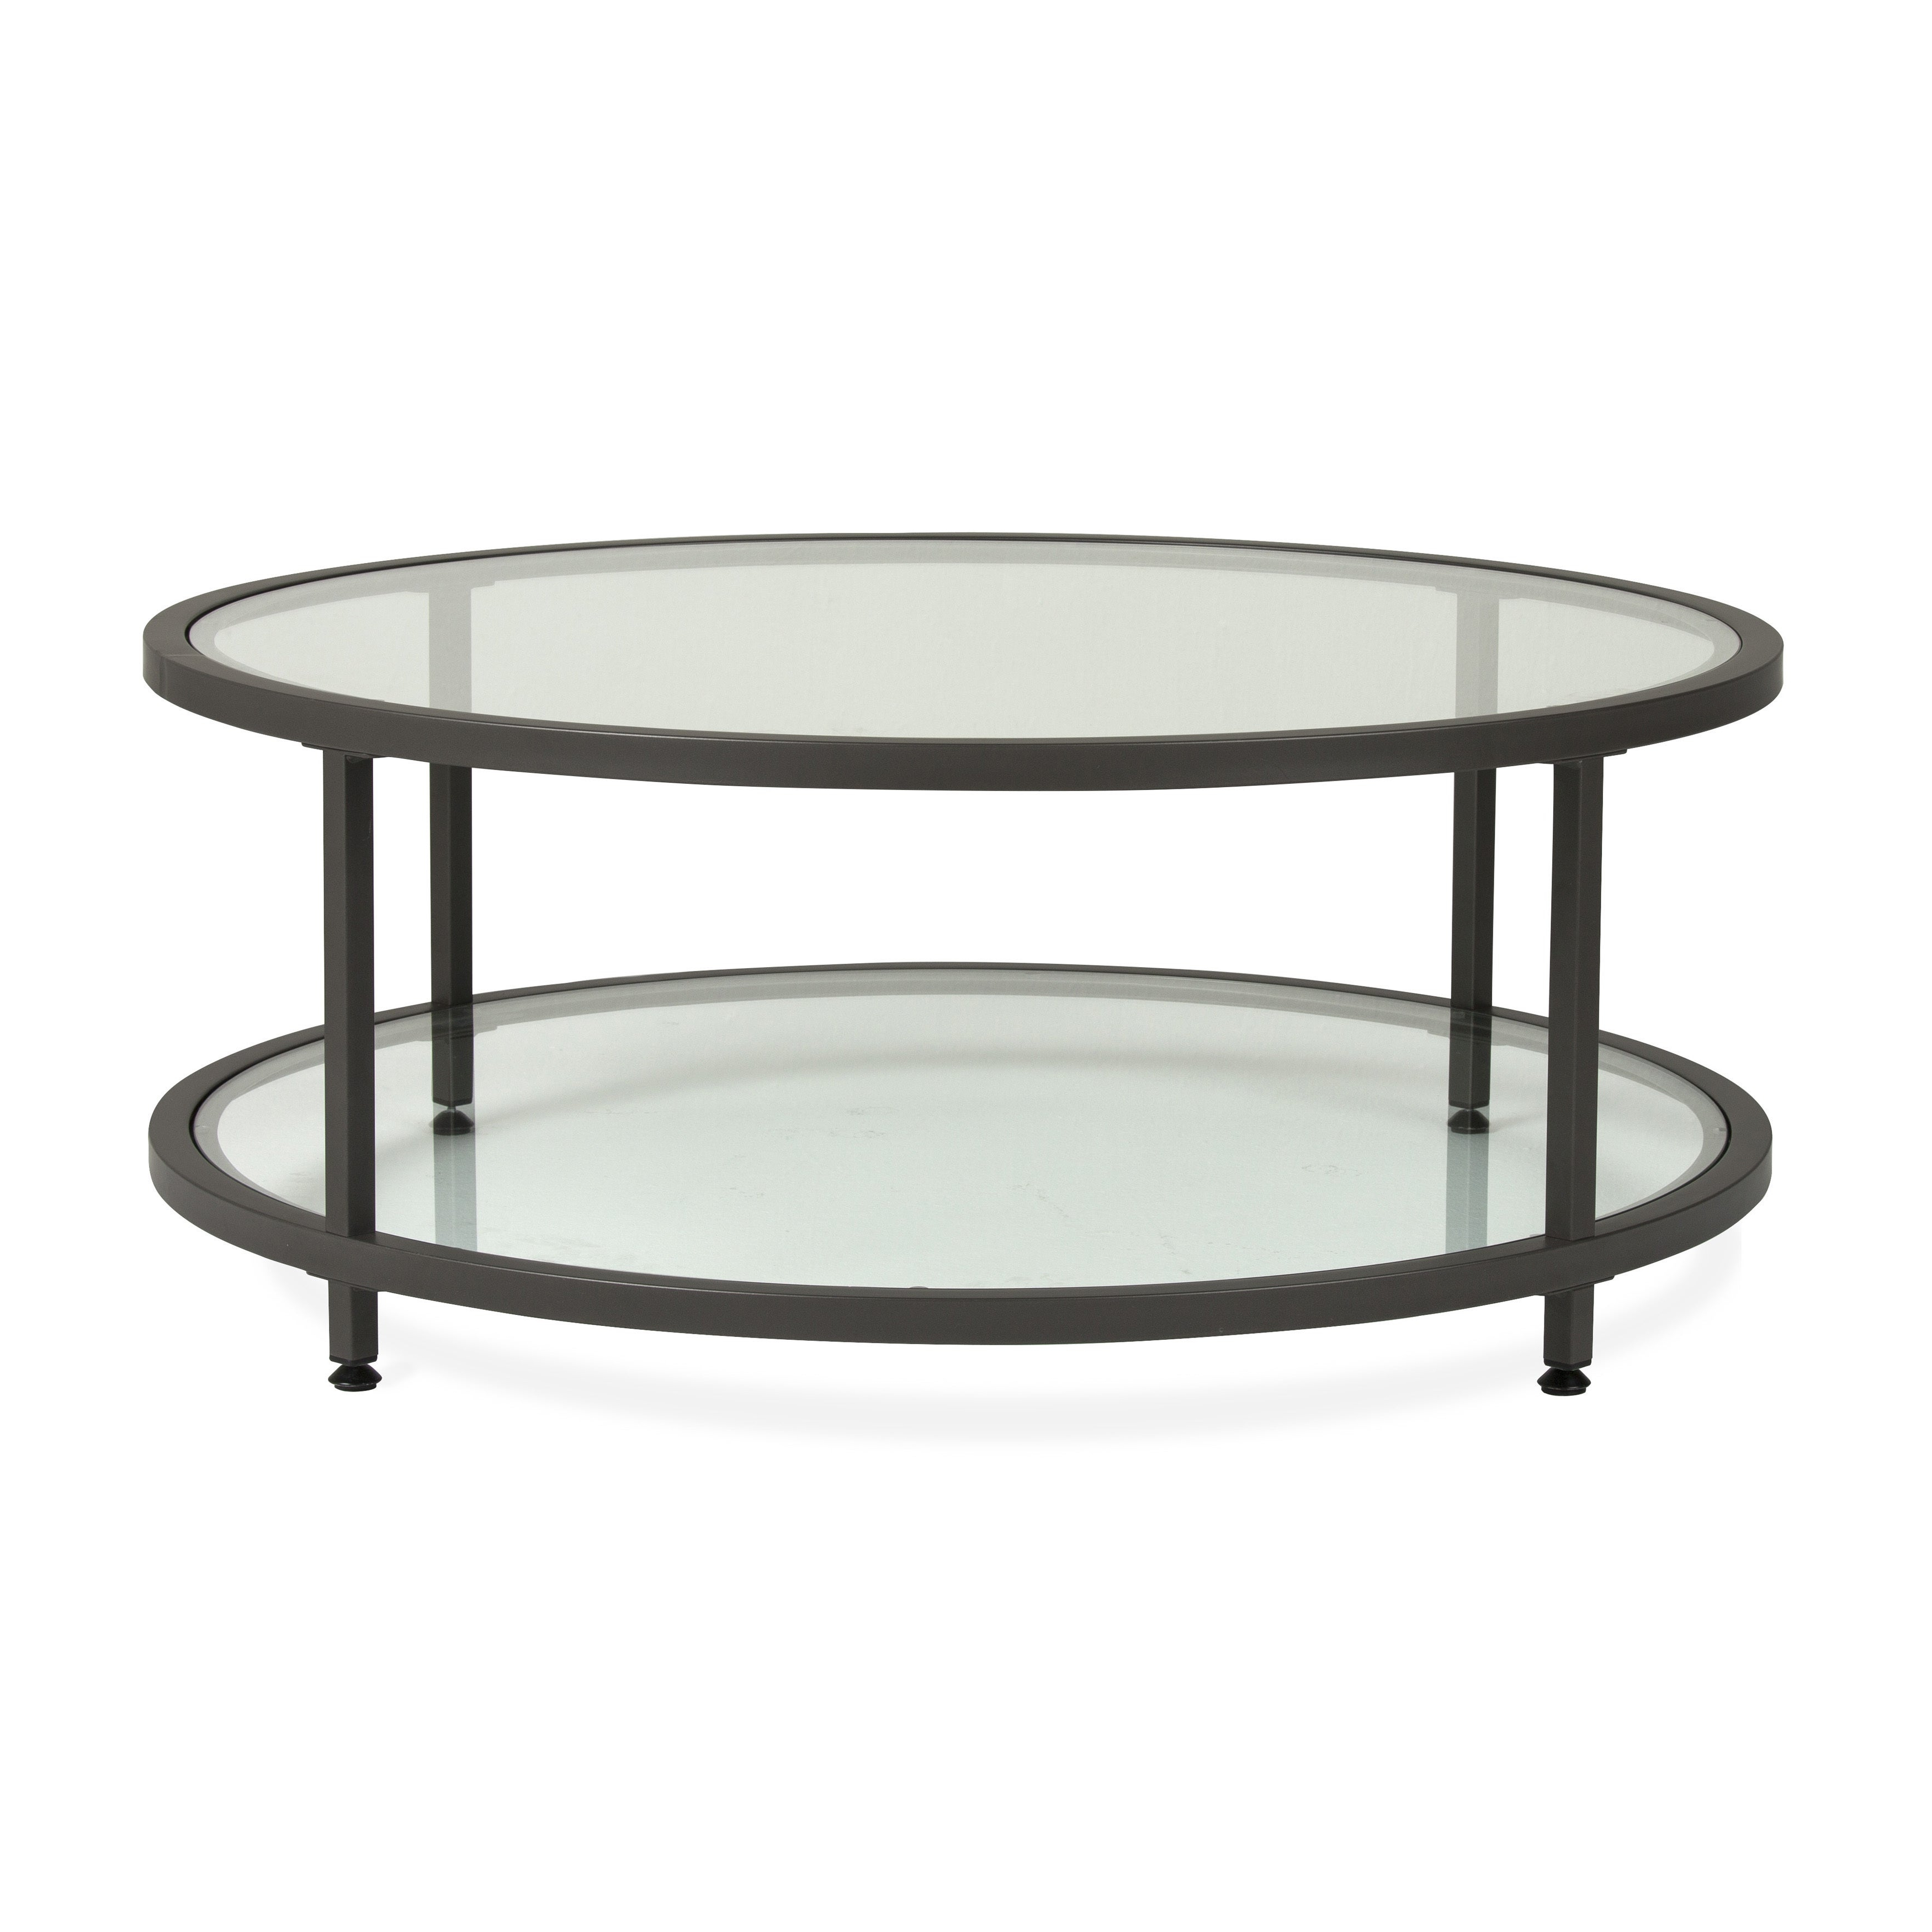 Carbon Loft Heimlich Pewter Steel/glass Round Coffee Table With Regard To Most Up To Date Carbon Loft Heimlich Pewter Steel/glass Round Coffee Tables (View 12 of 20)